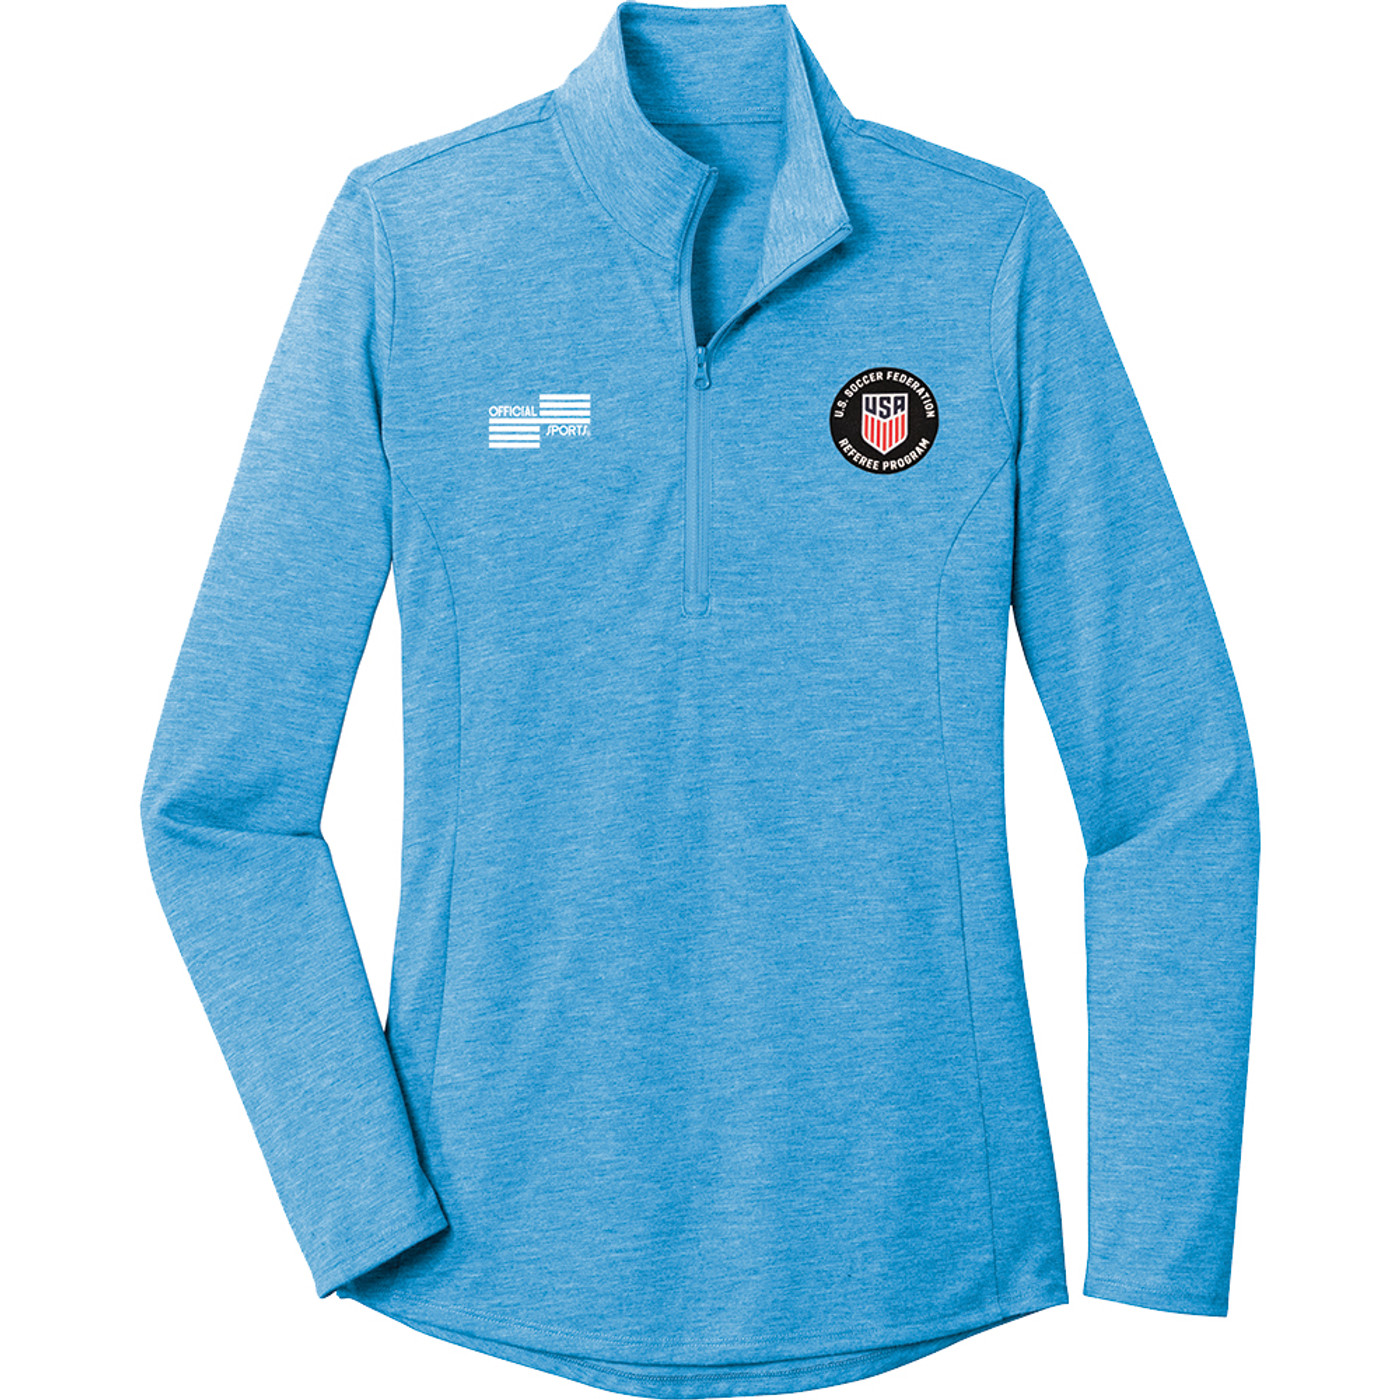 W2327CL USSF Women's Tri-Blend 1/4 Zip